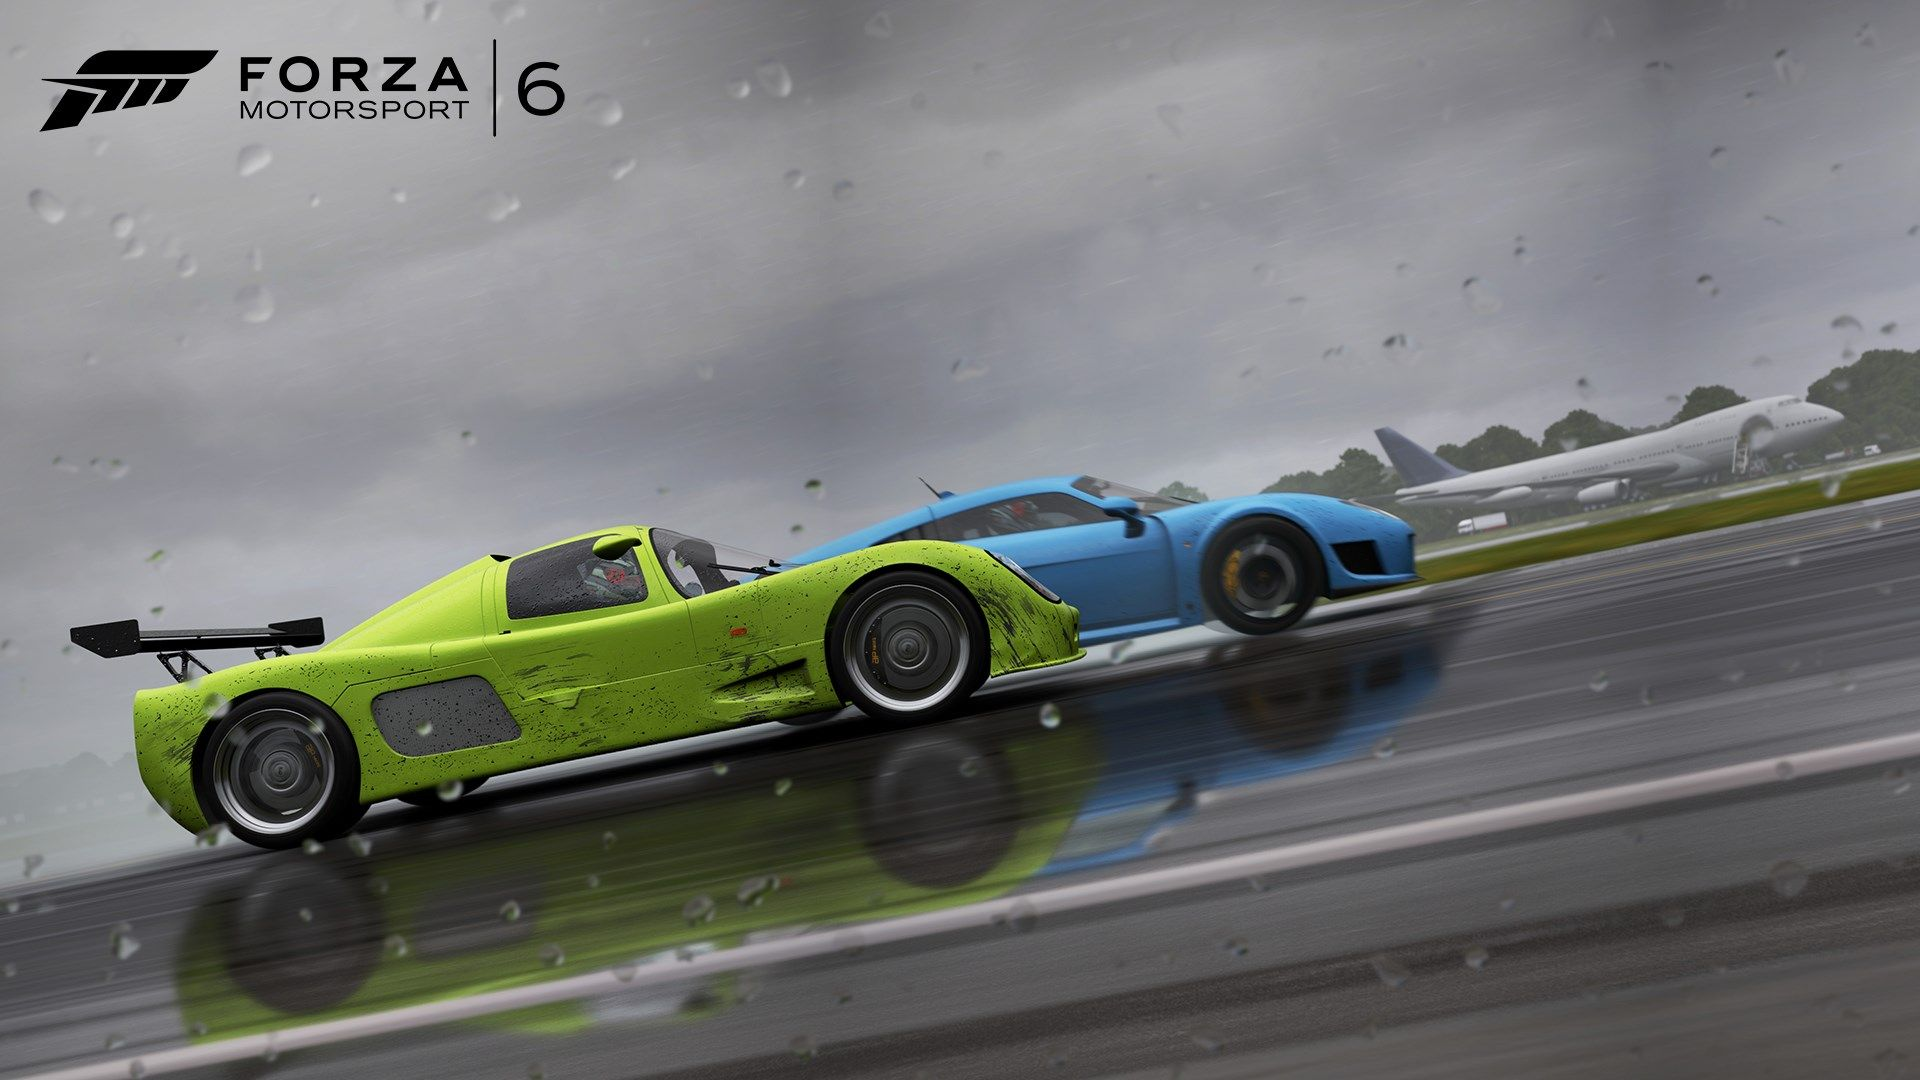 Forza Motorsport 6 Pictures For Large Desktop 228 Kb Berry Gordon